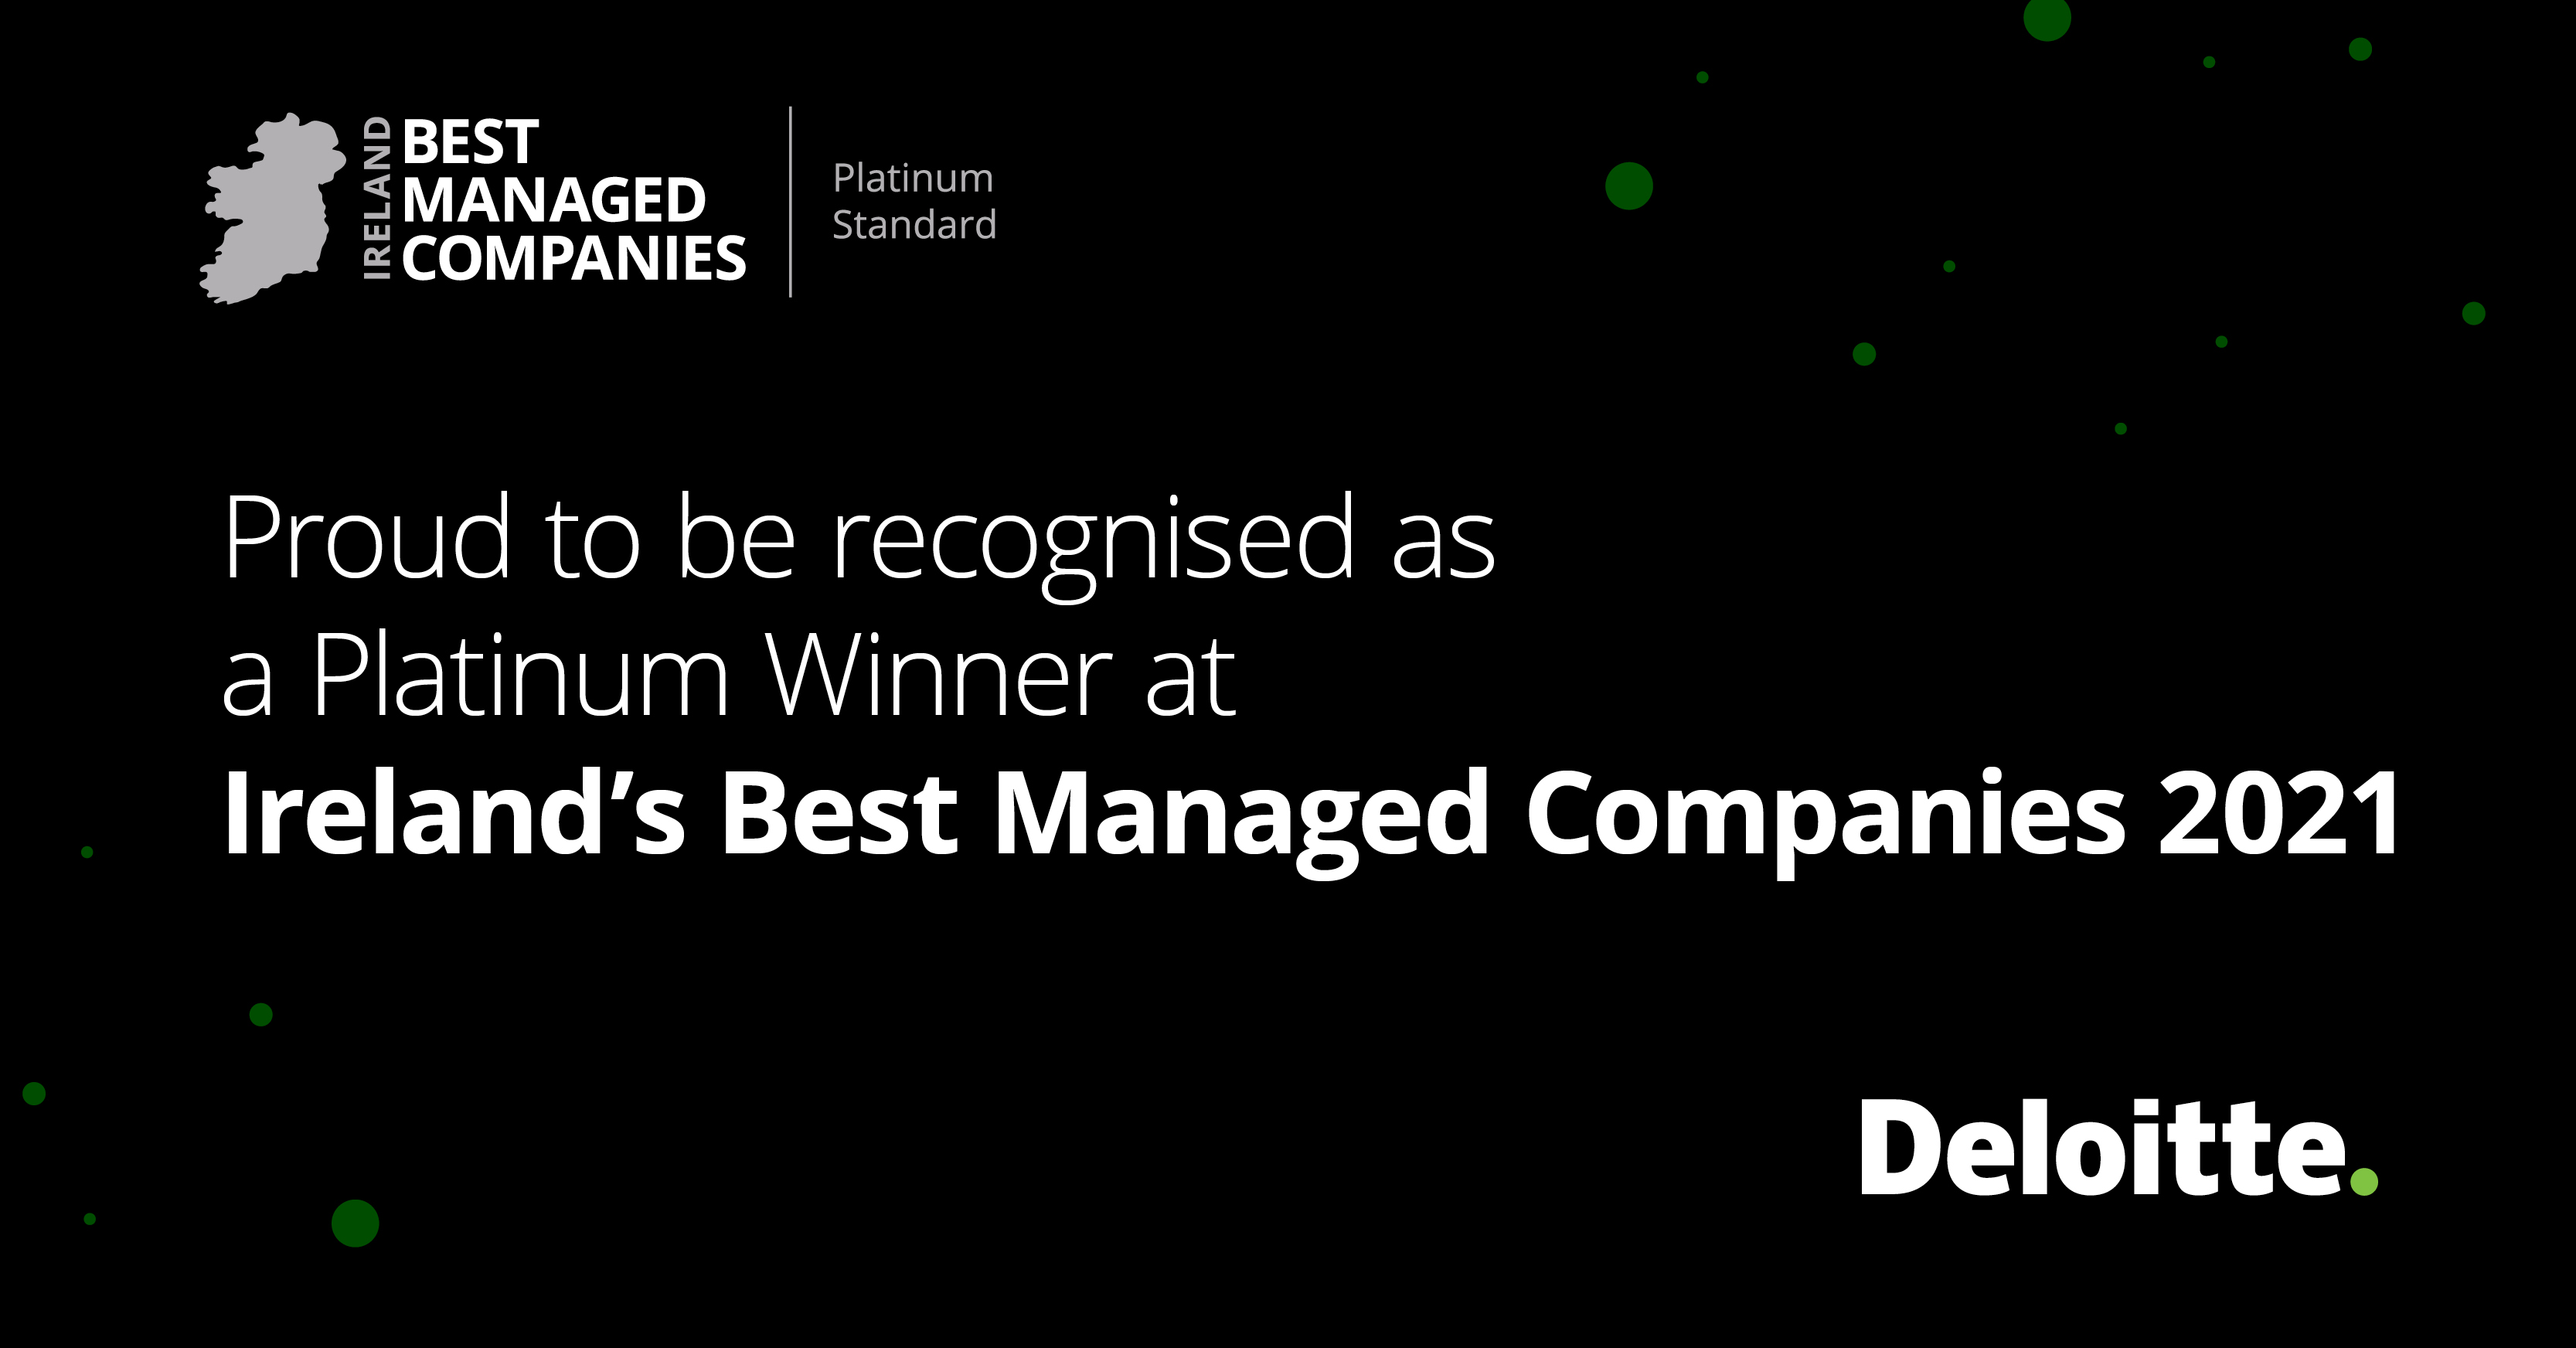 ByrneLooby announced as a Platinum Deloitte Best Managed Company 2021